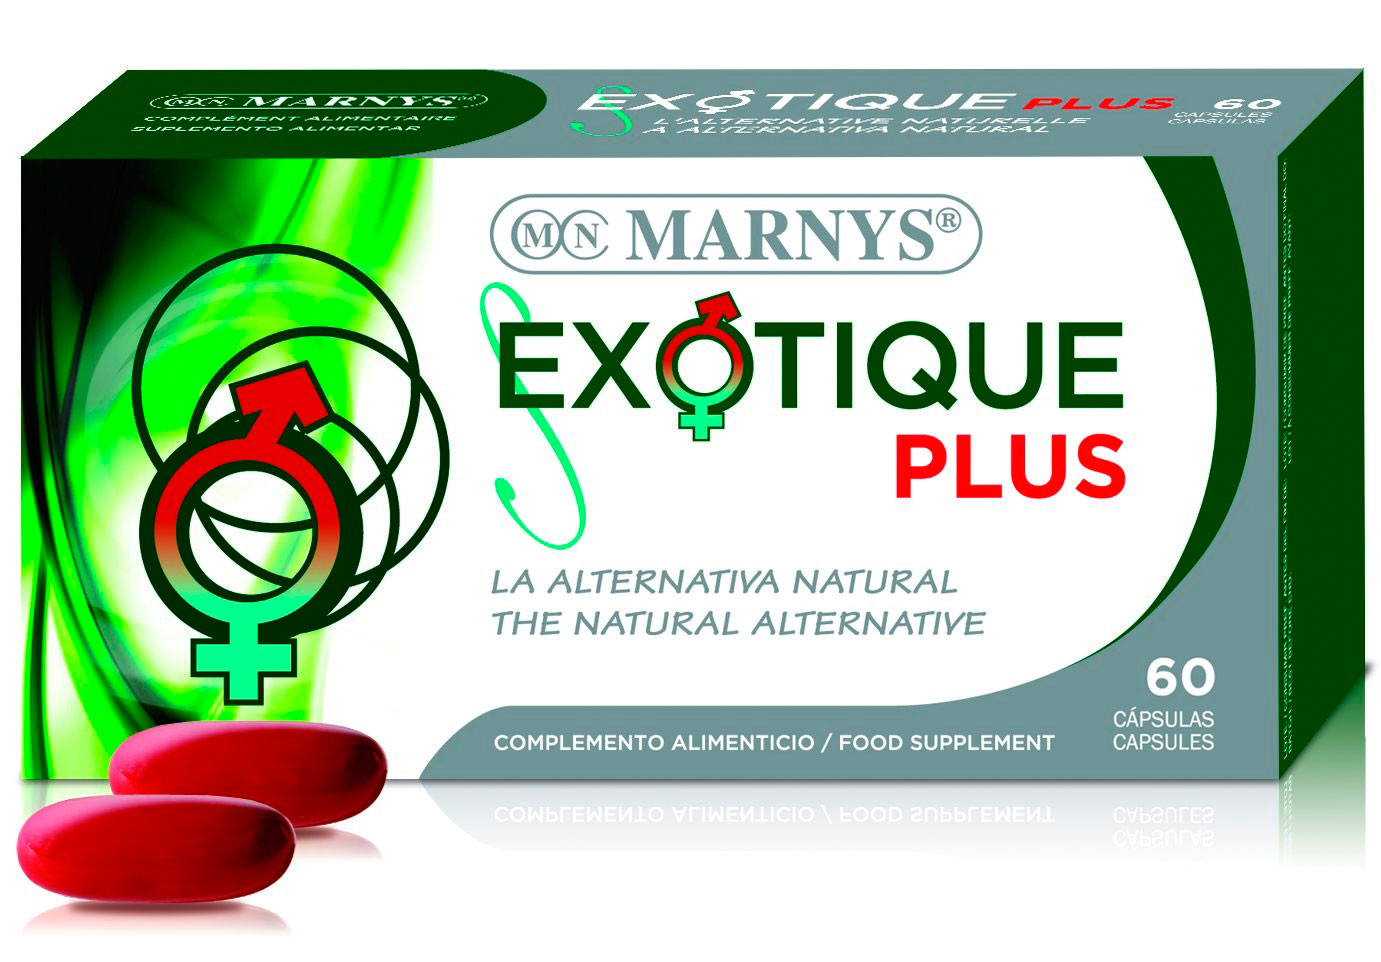 Marnys Exotique plus